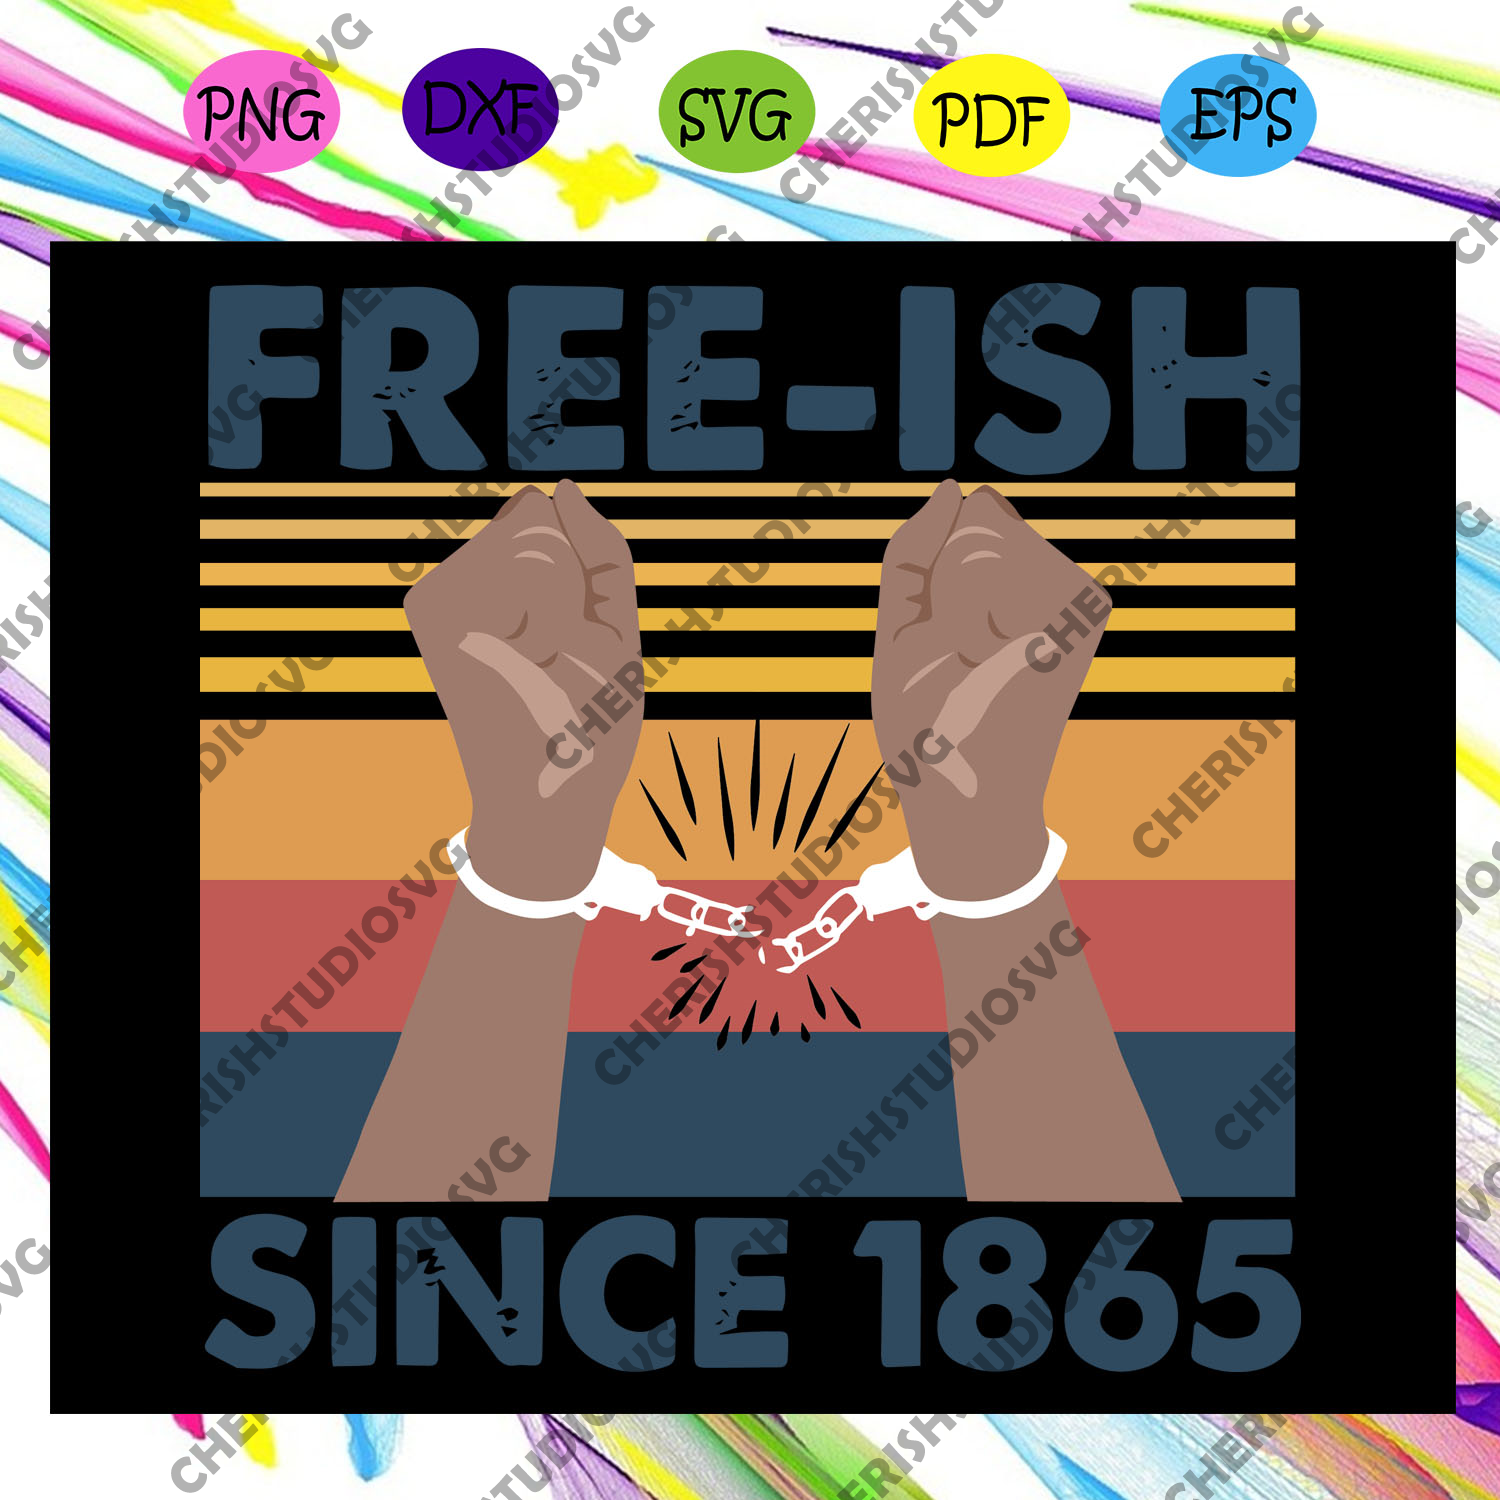 Freeish Since 1865, Black Woman Svg, Black Power Svg, Black Month, Black Pride Svg, Black Lives Matter, Human Rights, Resistance Svg, I Cant Breathe Svg, Black Queen Svg, Files For Silhouette, Files For Cricut, SVG, DXF, EPS, PNG, Instant Download